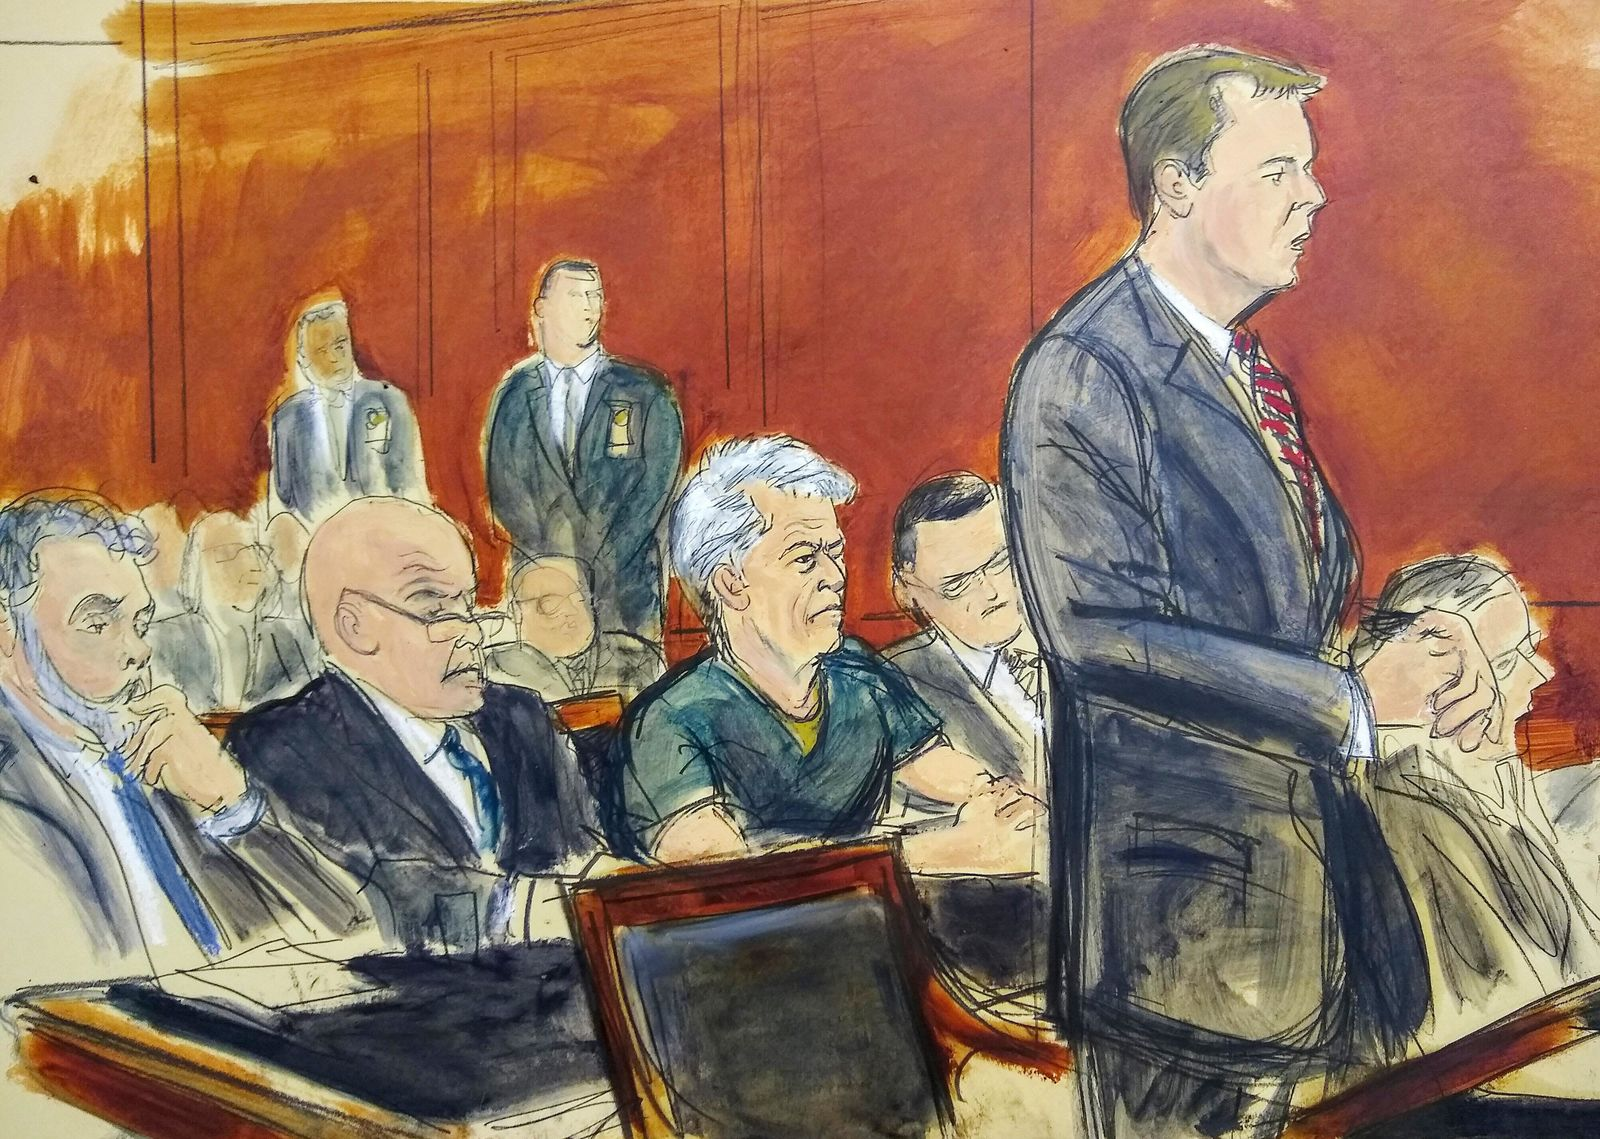 In this courtroom artist's sketch, defendant Jeffrey Epstein, center, listens as Assistant U.S. Attorney Alex Rossmiller, right, addresses the court during Epstein's arraignment, Monday, July 8, 2019 in New York. Epstein pleaded not guilty to federal sex trafficking charges. (Elizabeth Williams via AP)